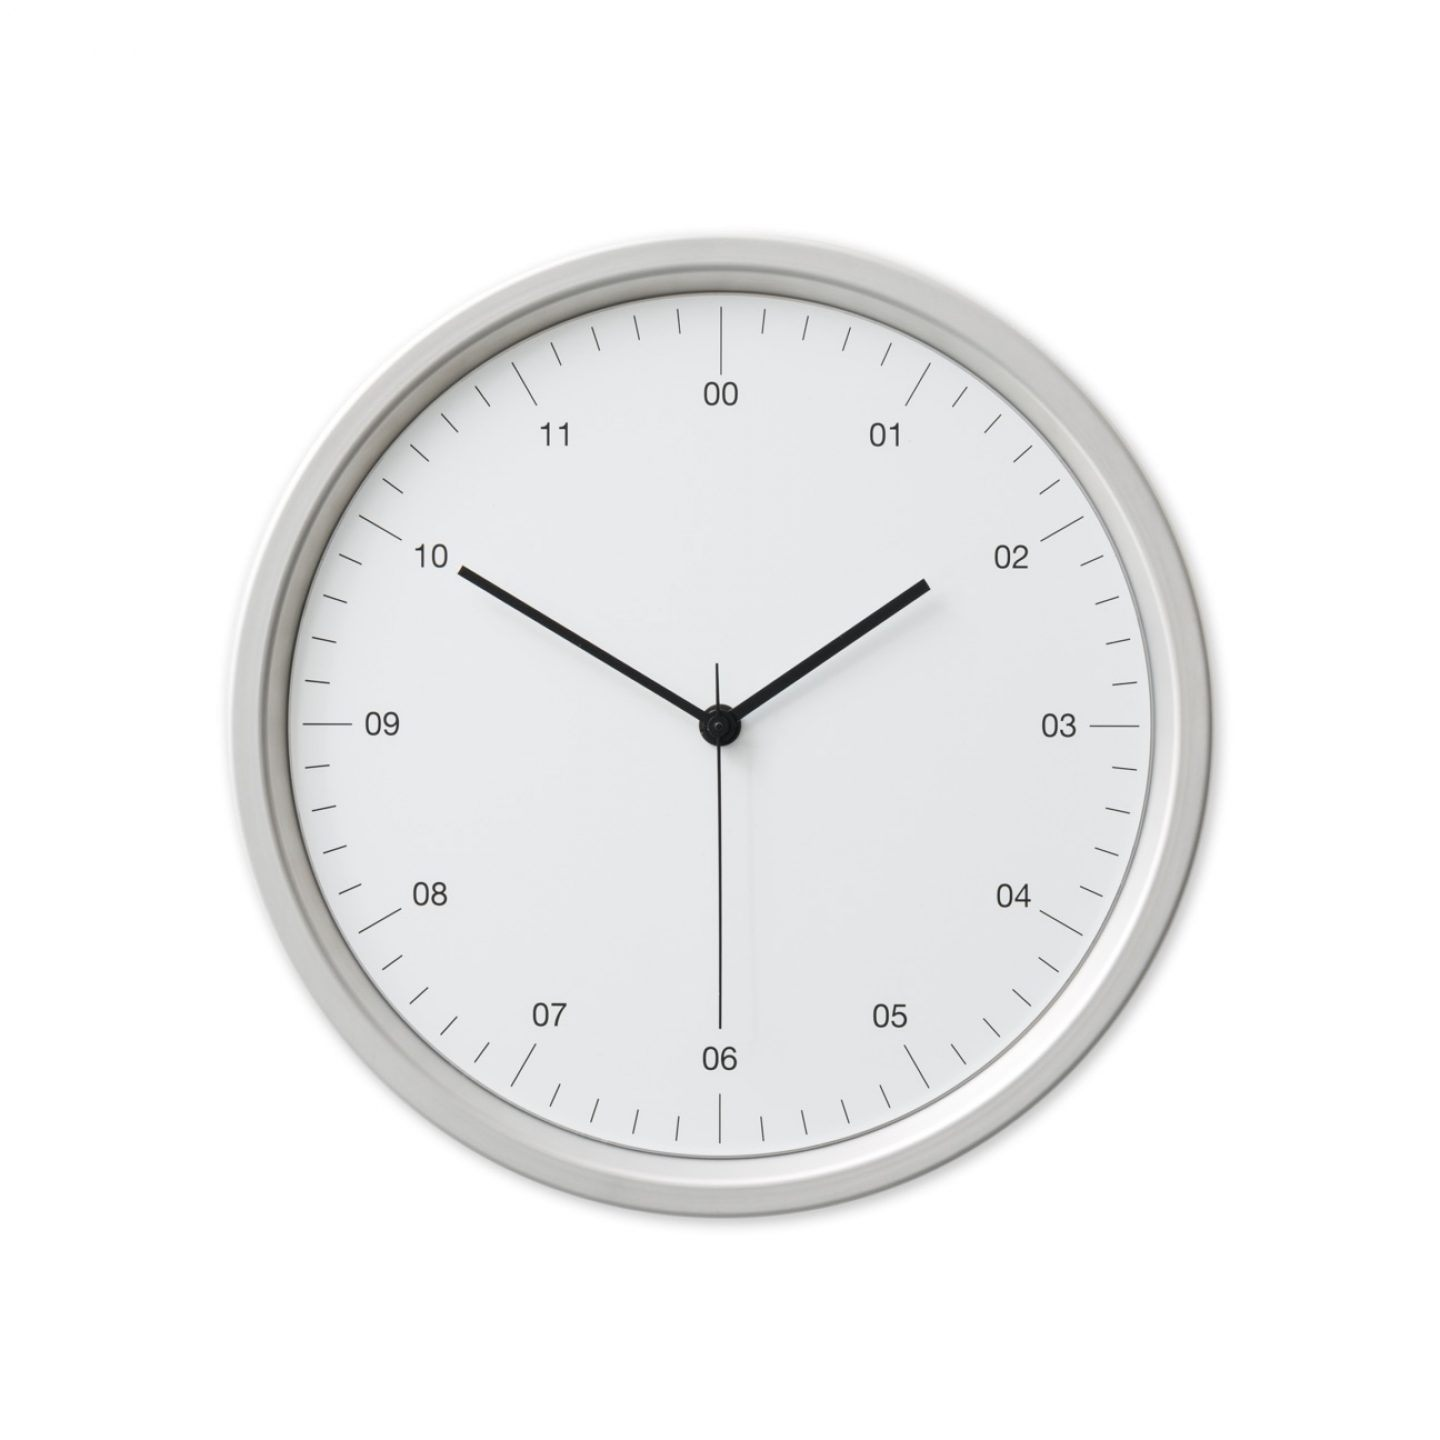 IGNANT-Design-Kitchen-A12-Clock-Shadow-1